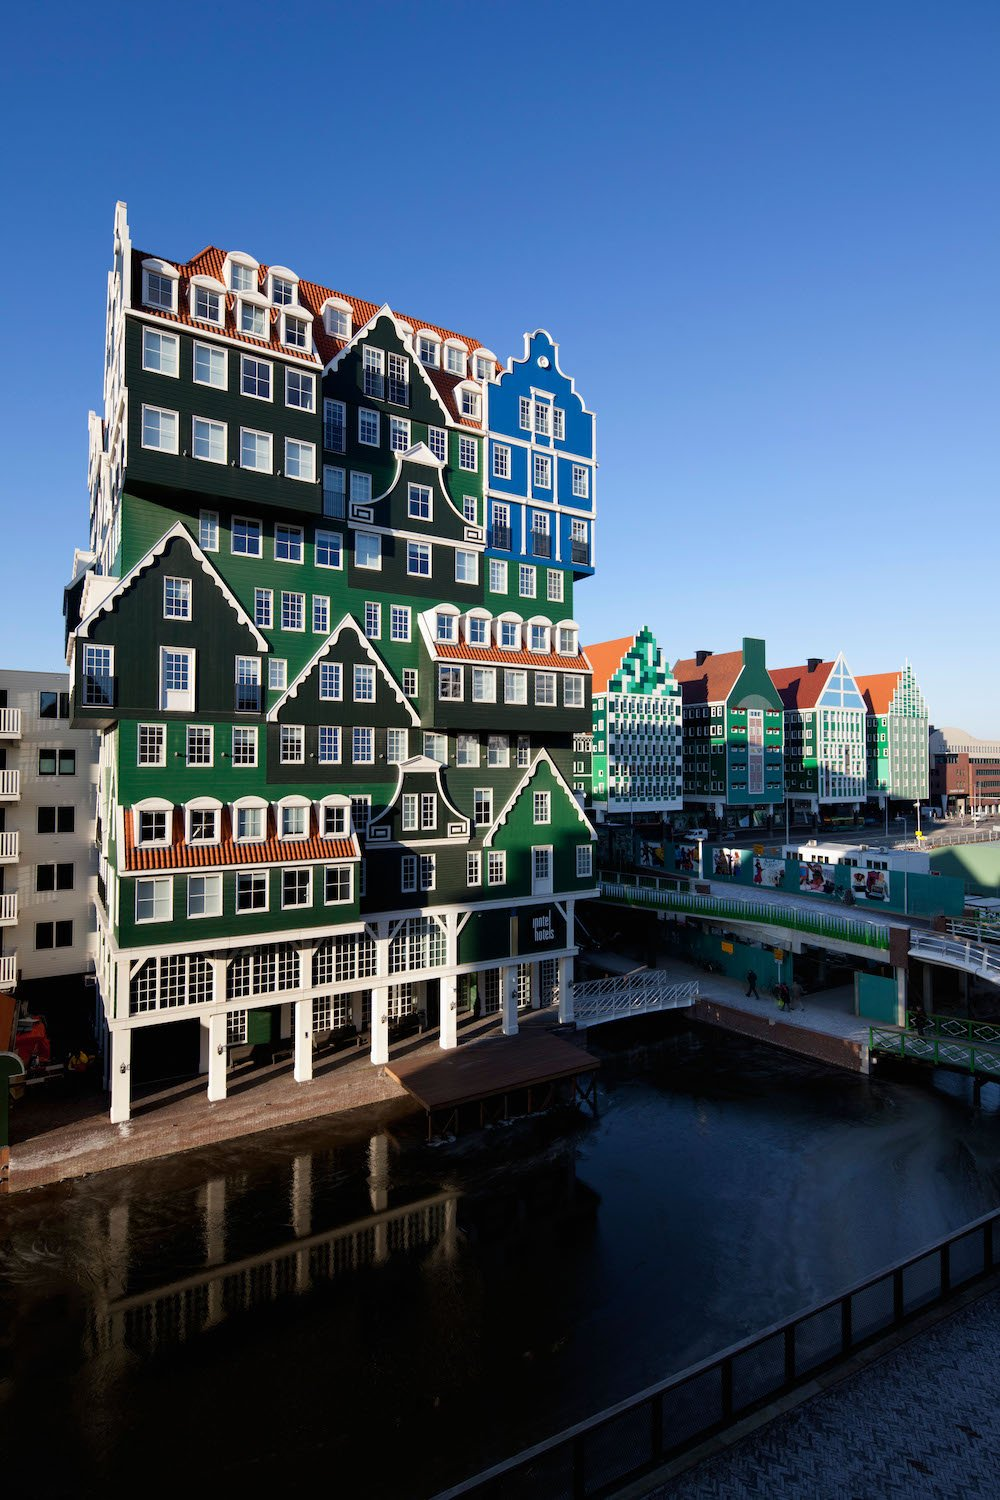 Amsterdam's Inntel Hotel by WAM Architecten © Frans lemmens/Alamy Stock Photo